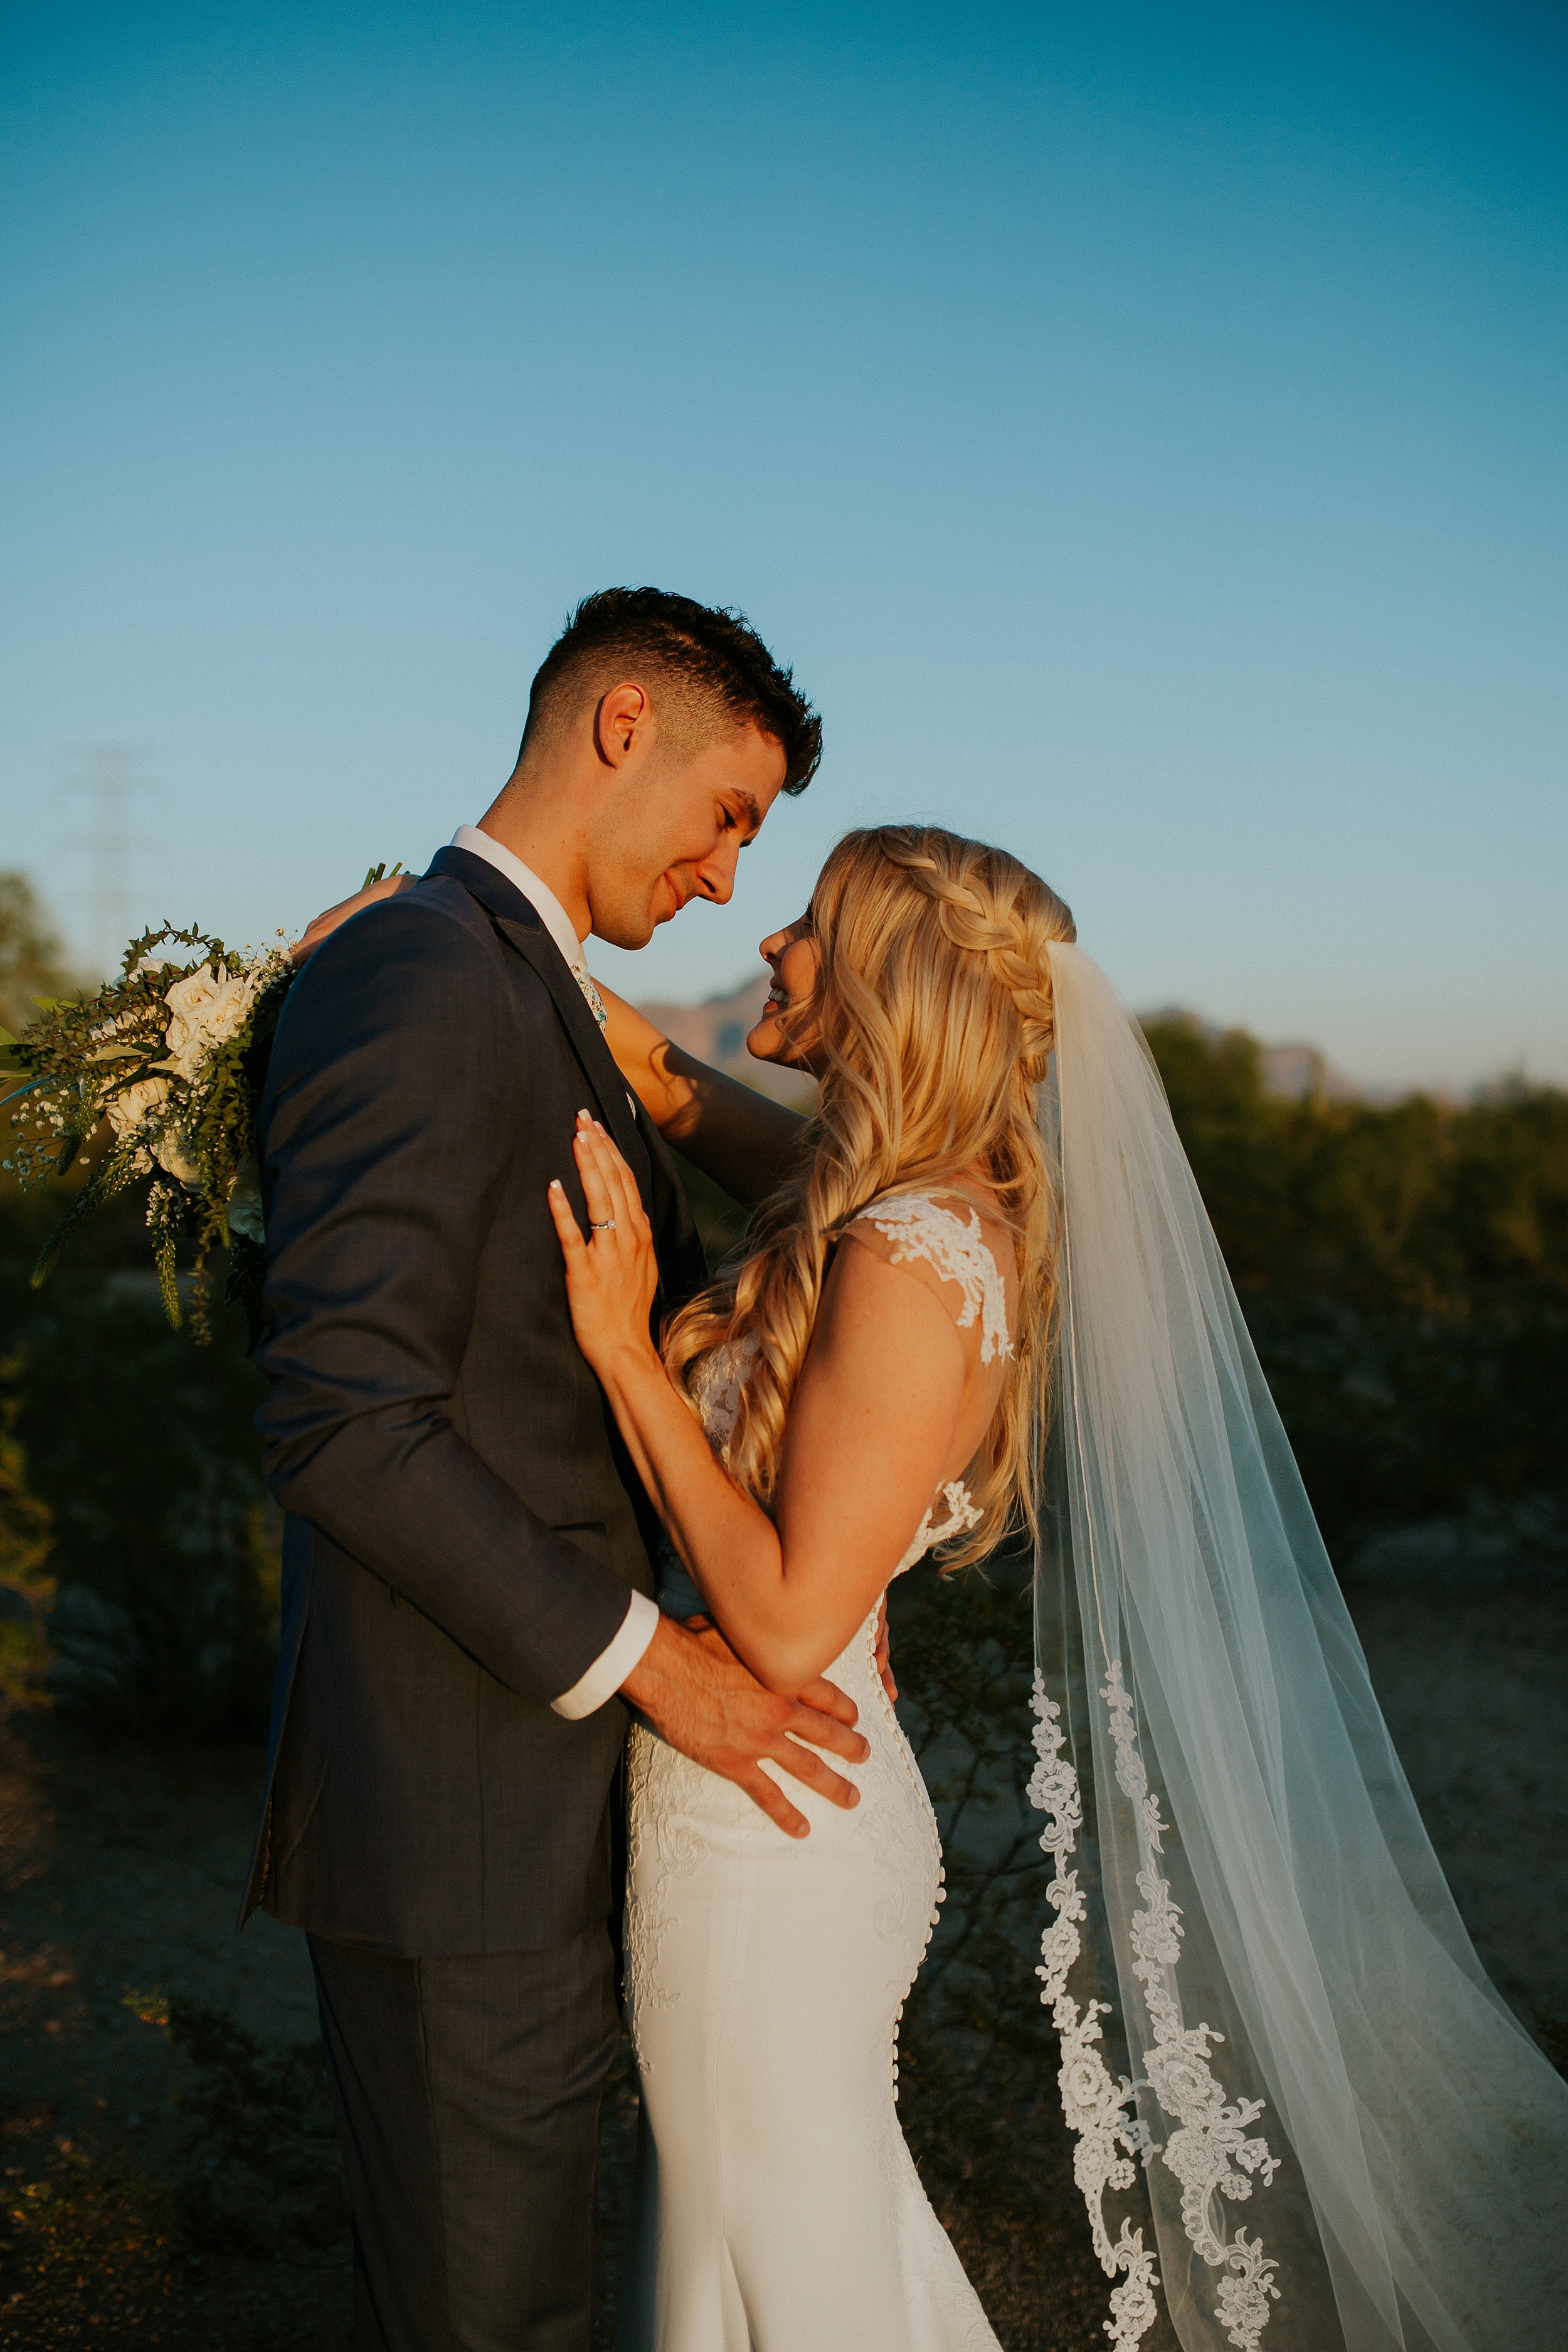 Meg+Bubba_Wedding_Bride+Groom_Portraits_Arizona-182.jpg